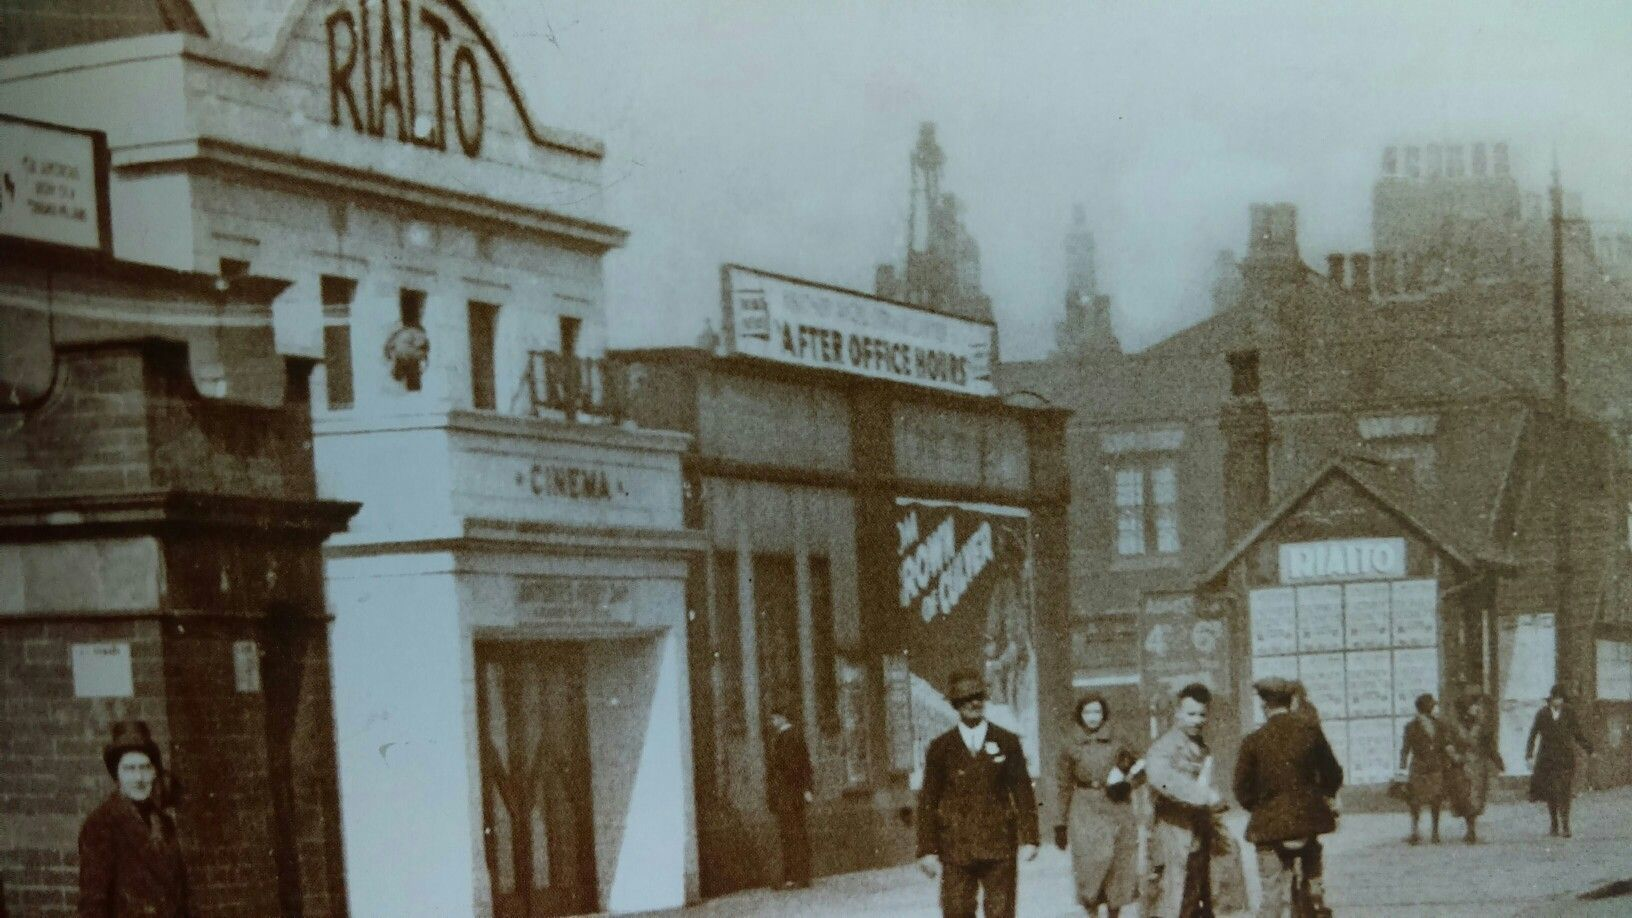 The Rialto Beverley Road Hull The Cinema Was Re Named The National After The War Was Closed In 1961 And Reopened As A Kingston Upon Hull Hull England Hull